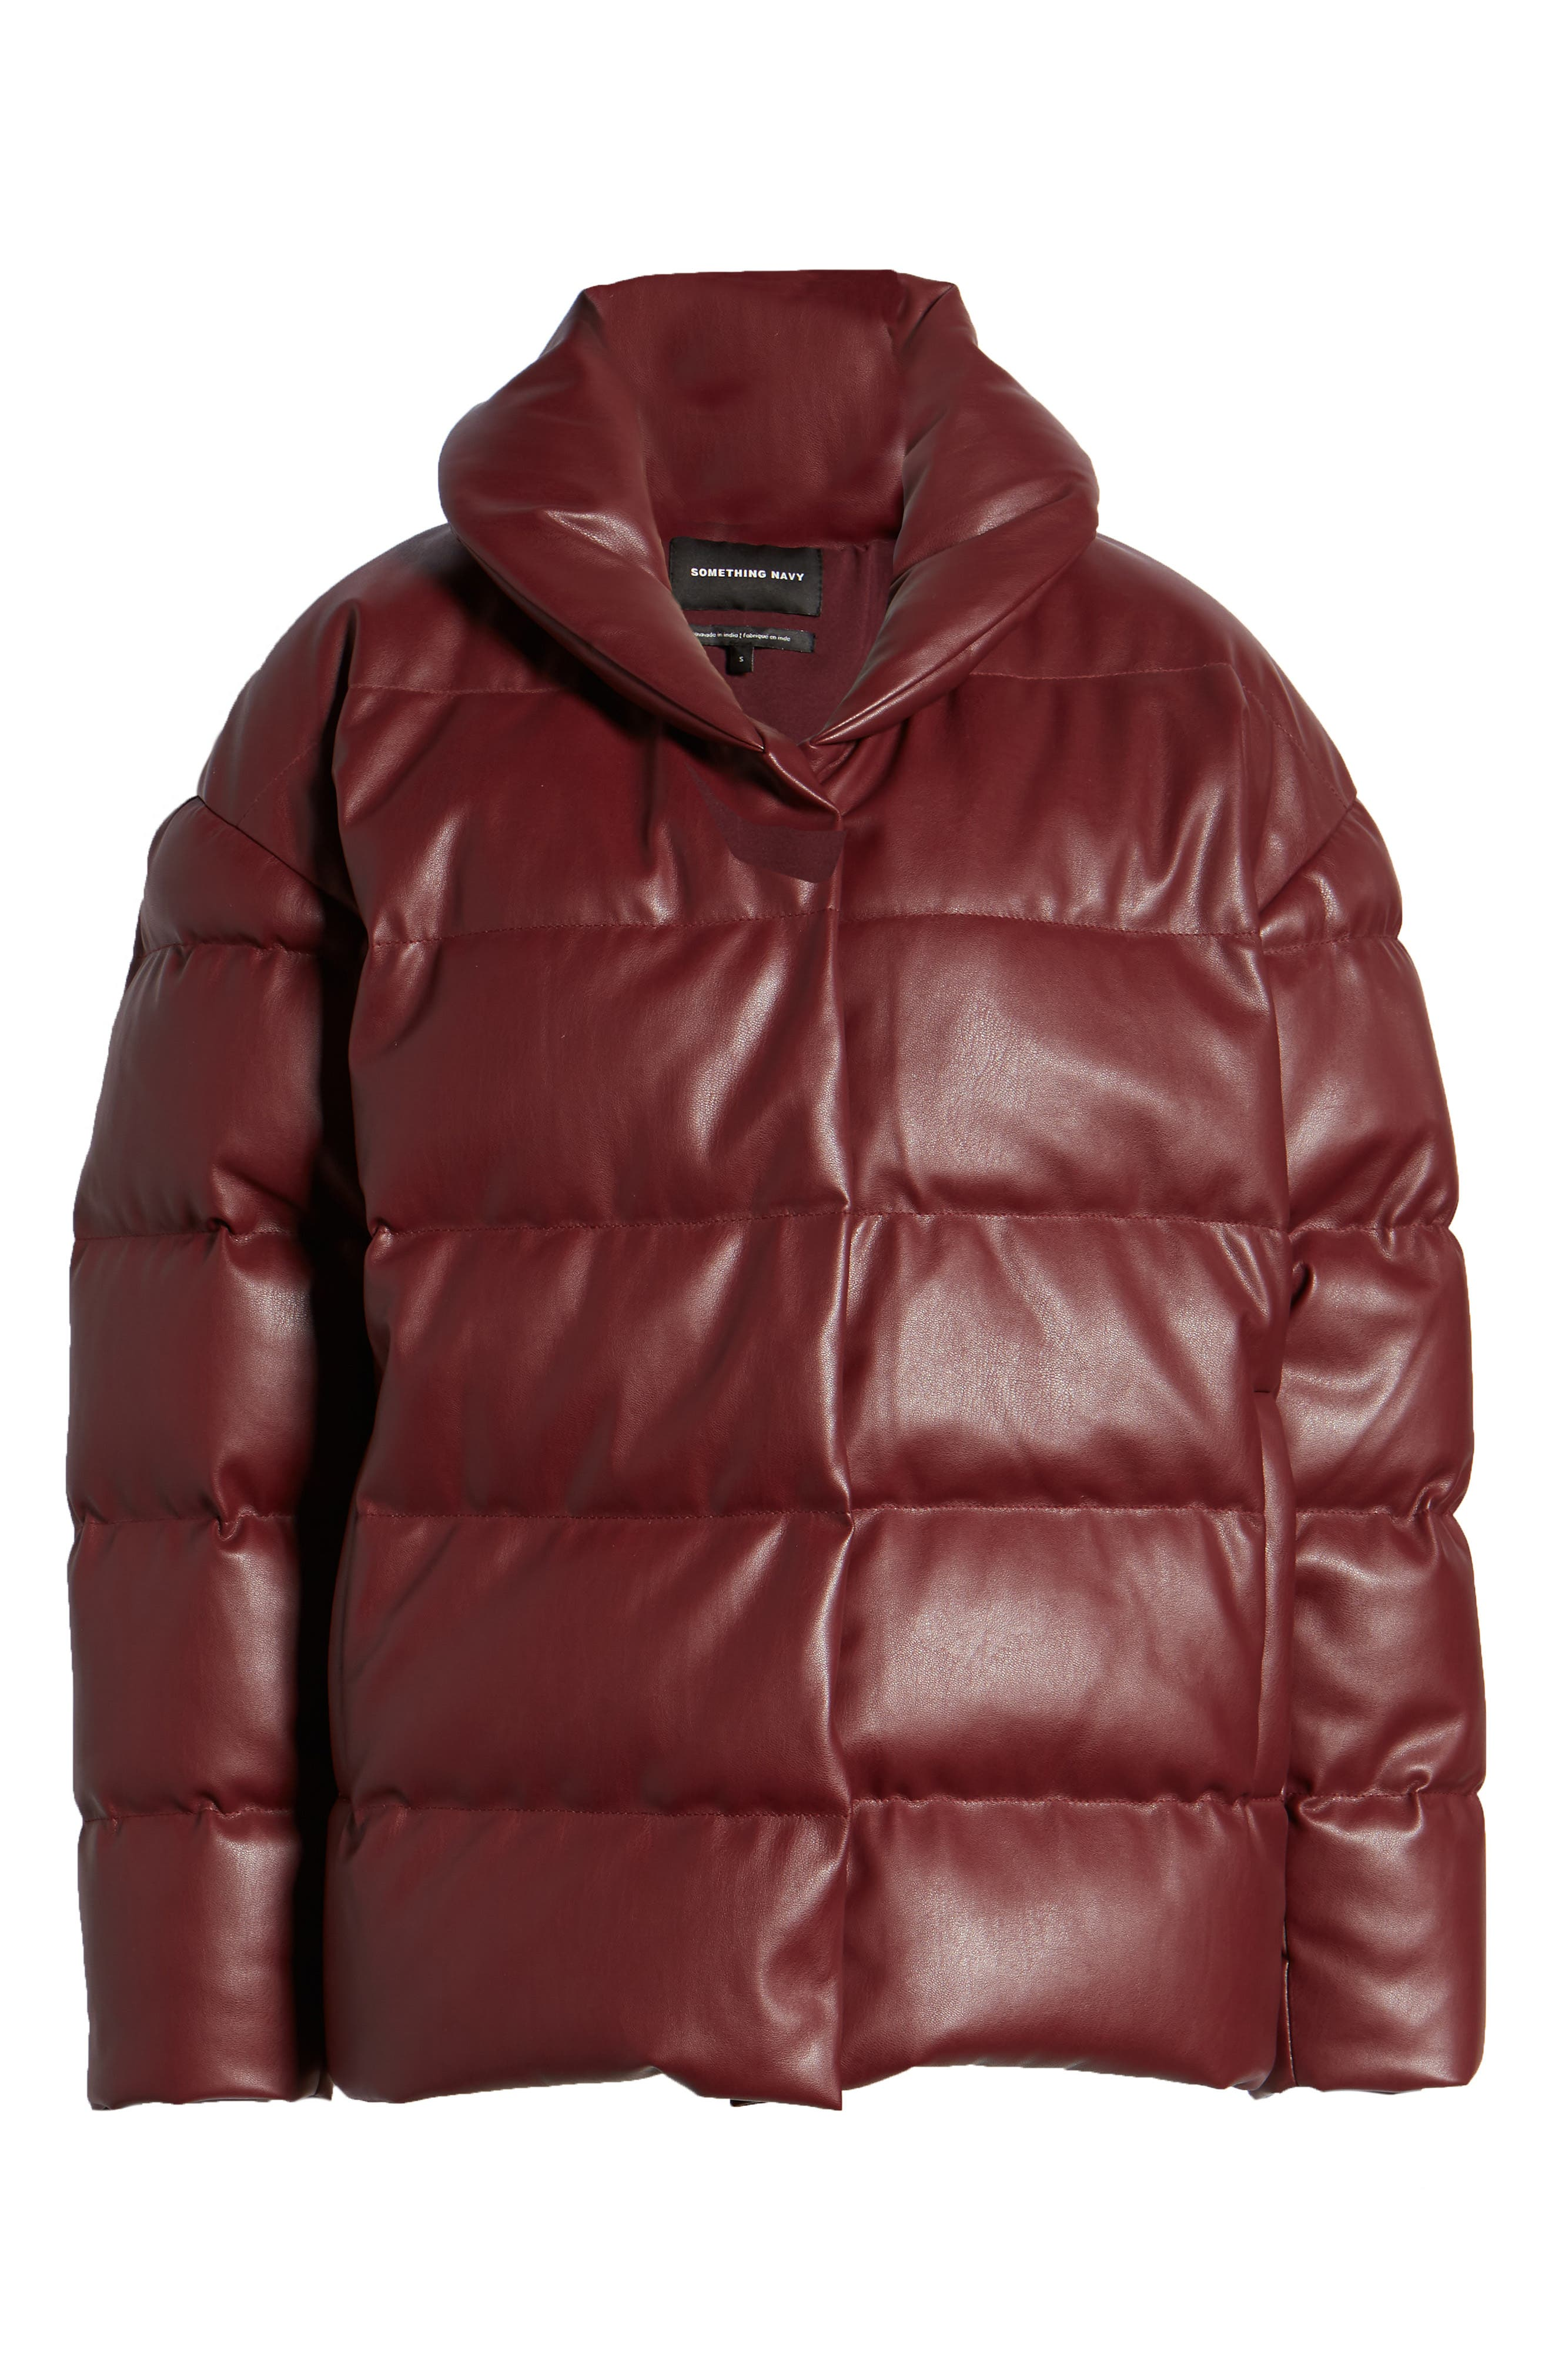 SOMETHING NAVY,                             Faux Leather Puffer Coat,                             Alternate thumbnail 6, color,                             601